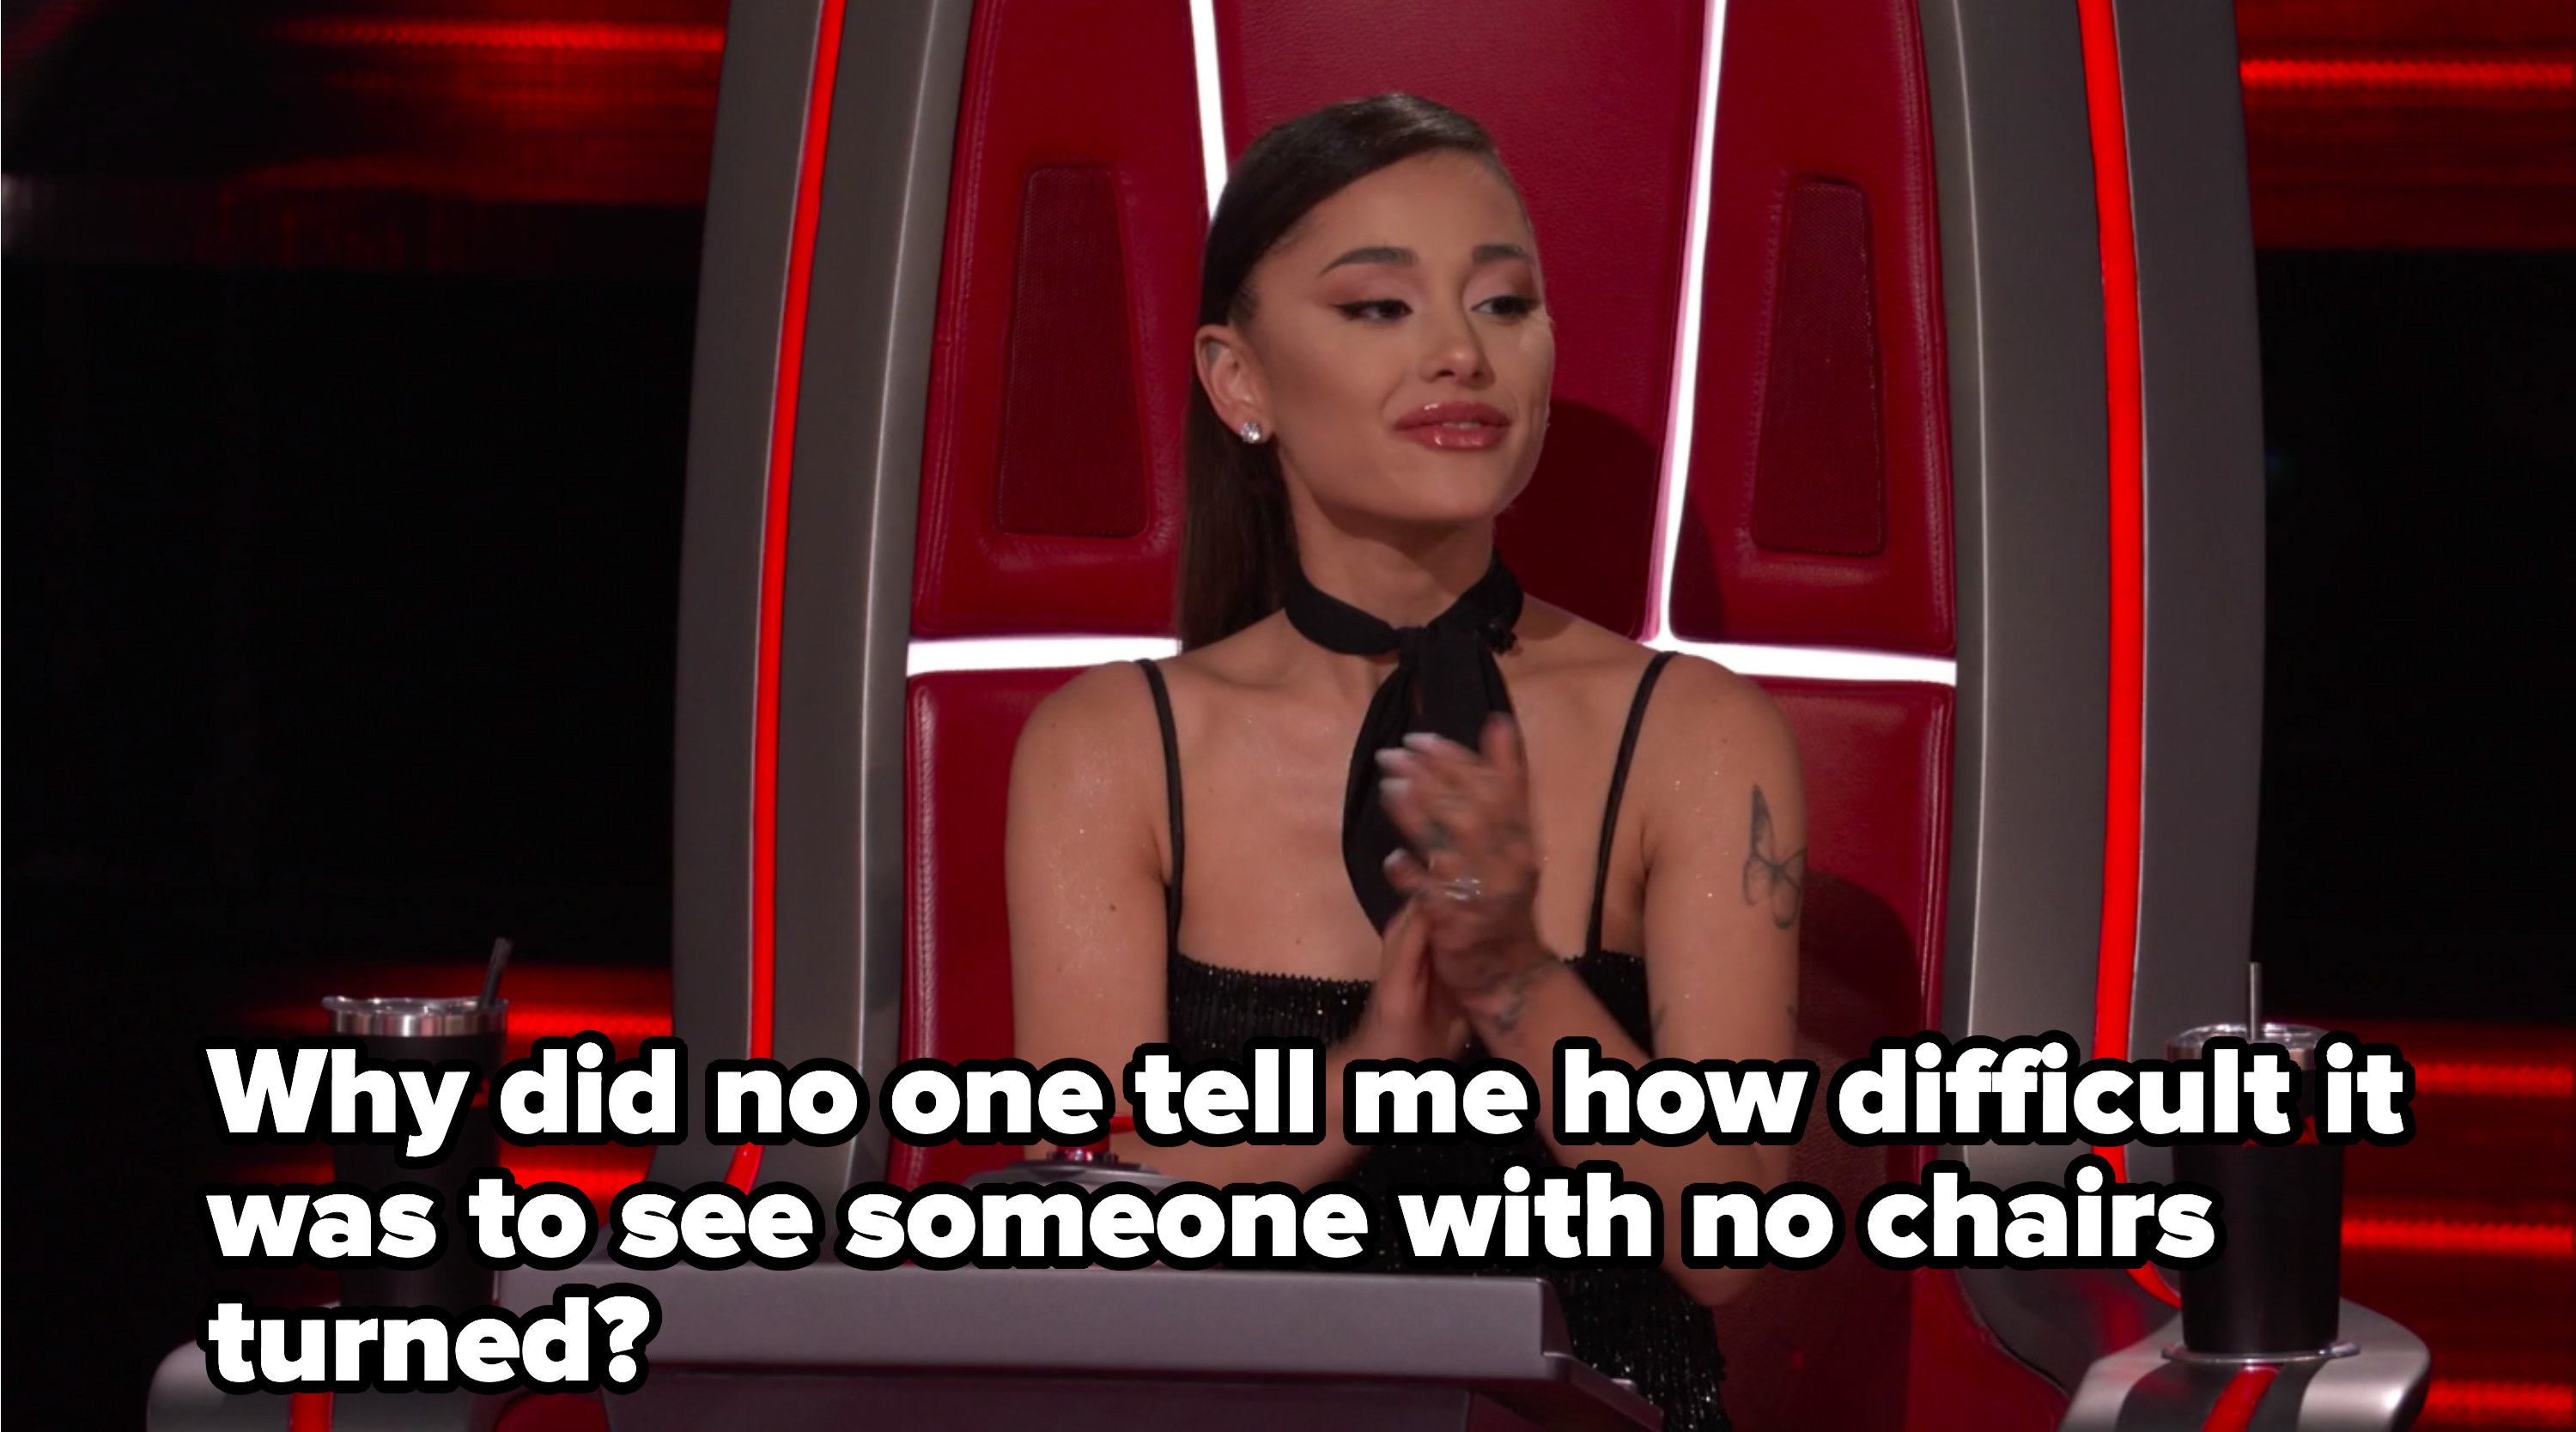 """Ariana says, """"Why did no one tell me how difficult it was to see someone with no chairs turned?"""""""